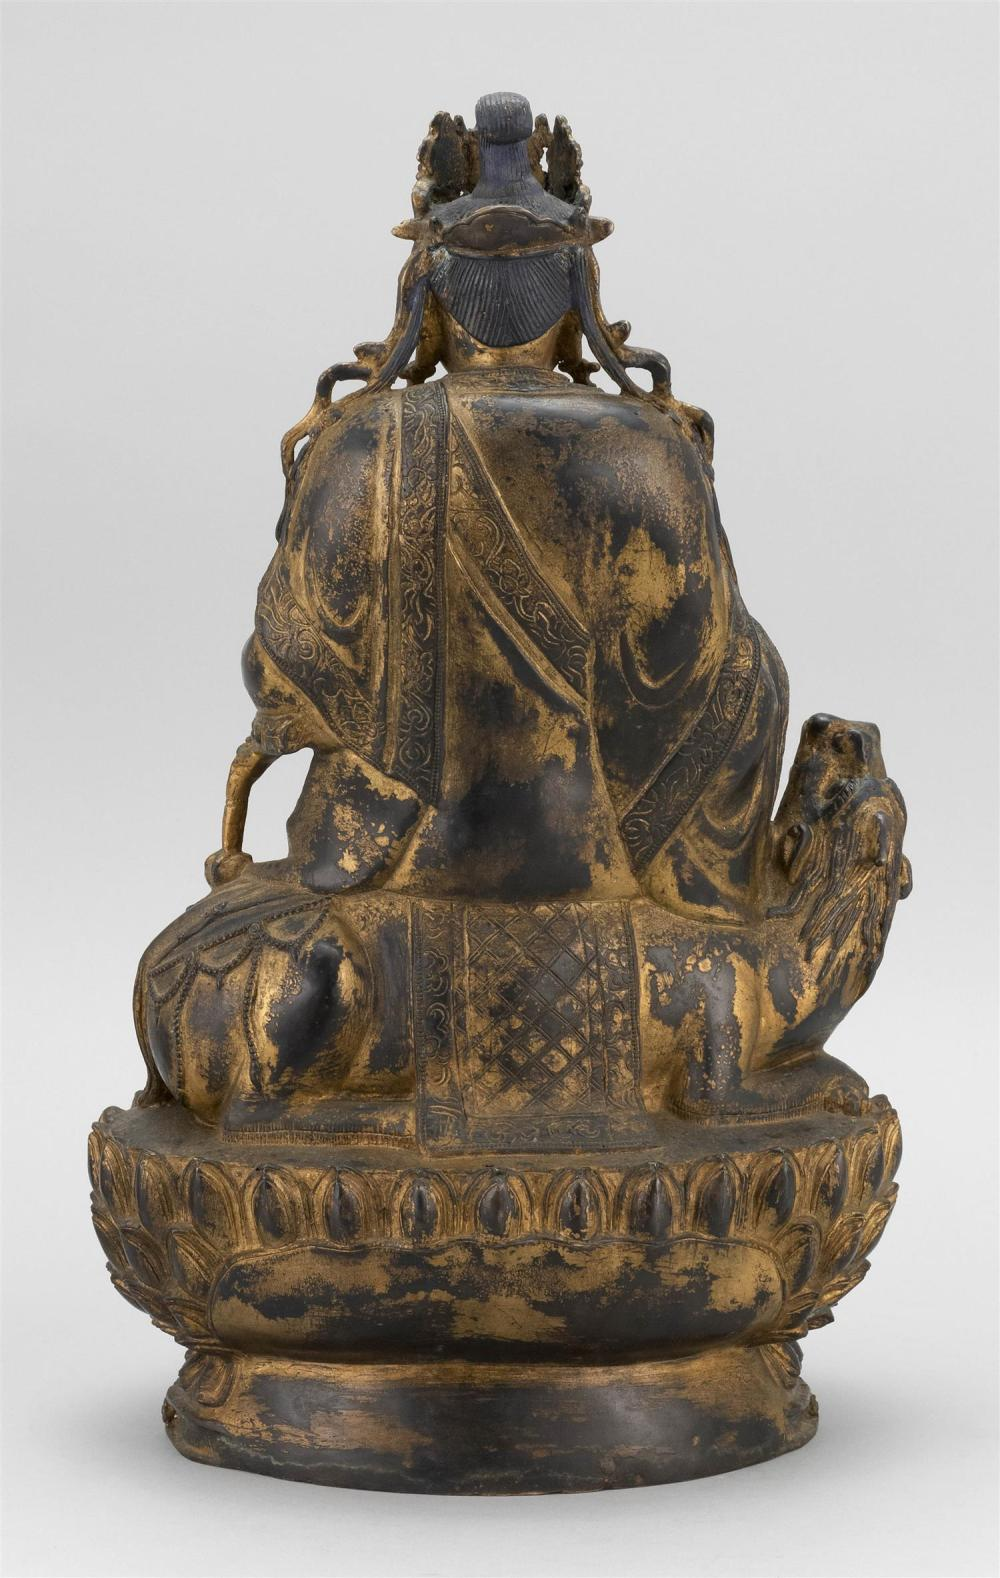 Lot 978: CHINESE PARTIAL-GILT FIGURE OF BUDDHA Seated on a guardian lion atop a two-tier lotus base. Traces of gilding and polychroming. Heig...